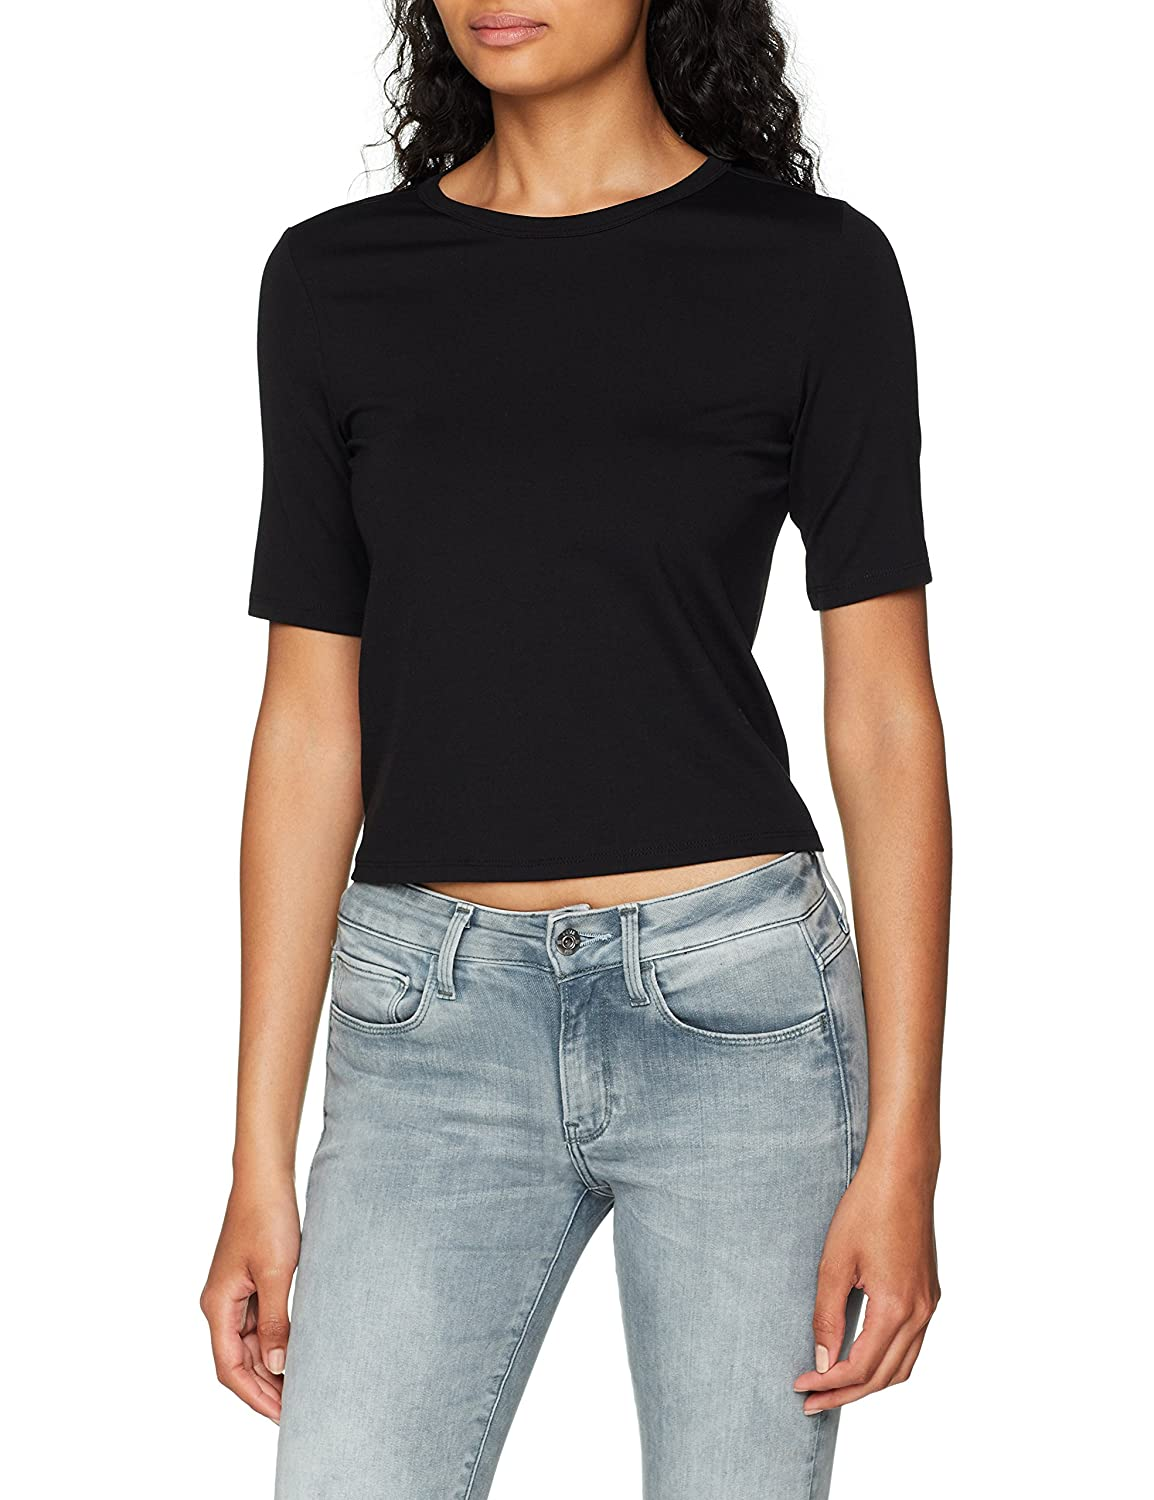 TALLA L. G-STAR RAW Silber Cropped R T Wmn S/S Camiseta para Mujer